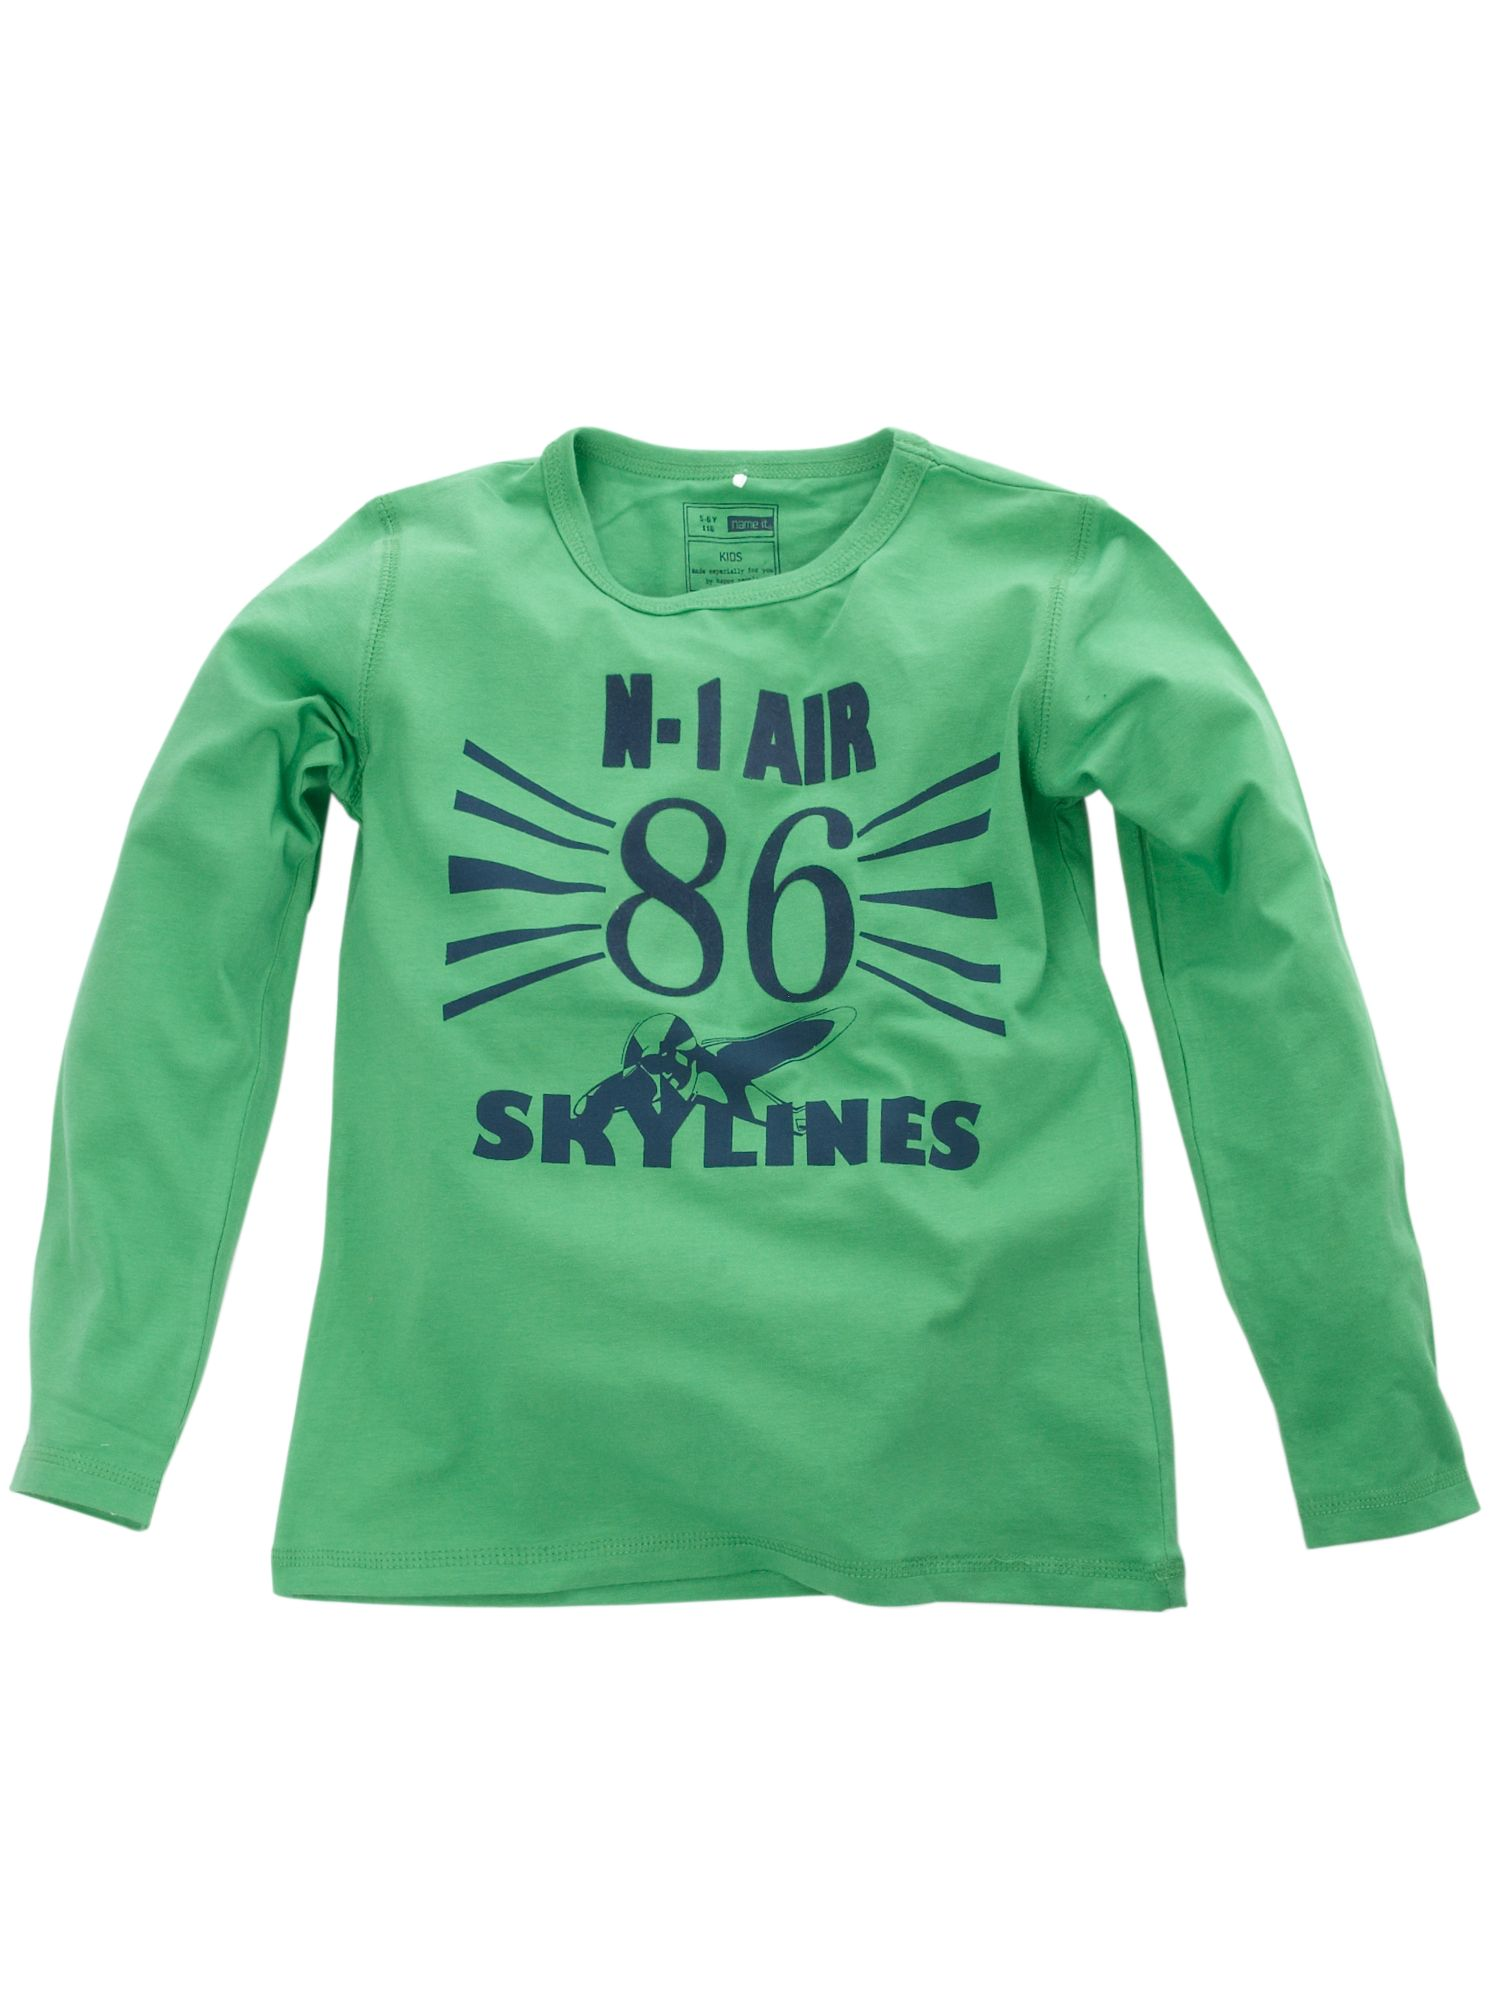 Name it long sleeved air force print t shirt green 10 for Name printed t shirts online